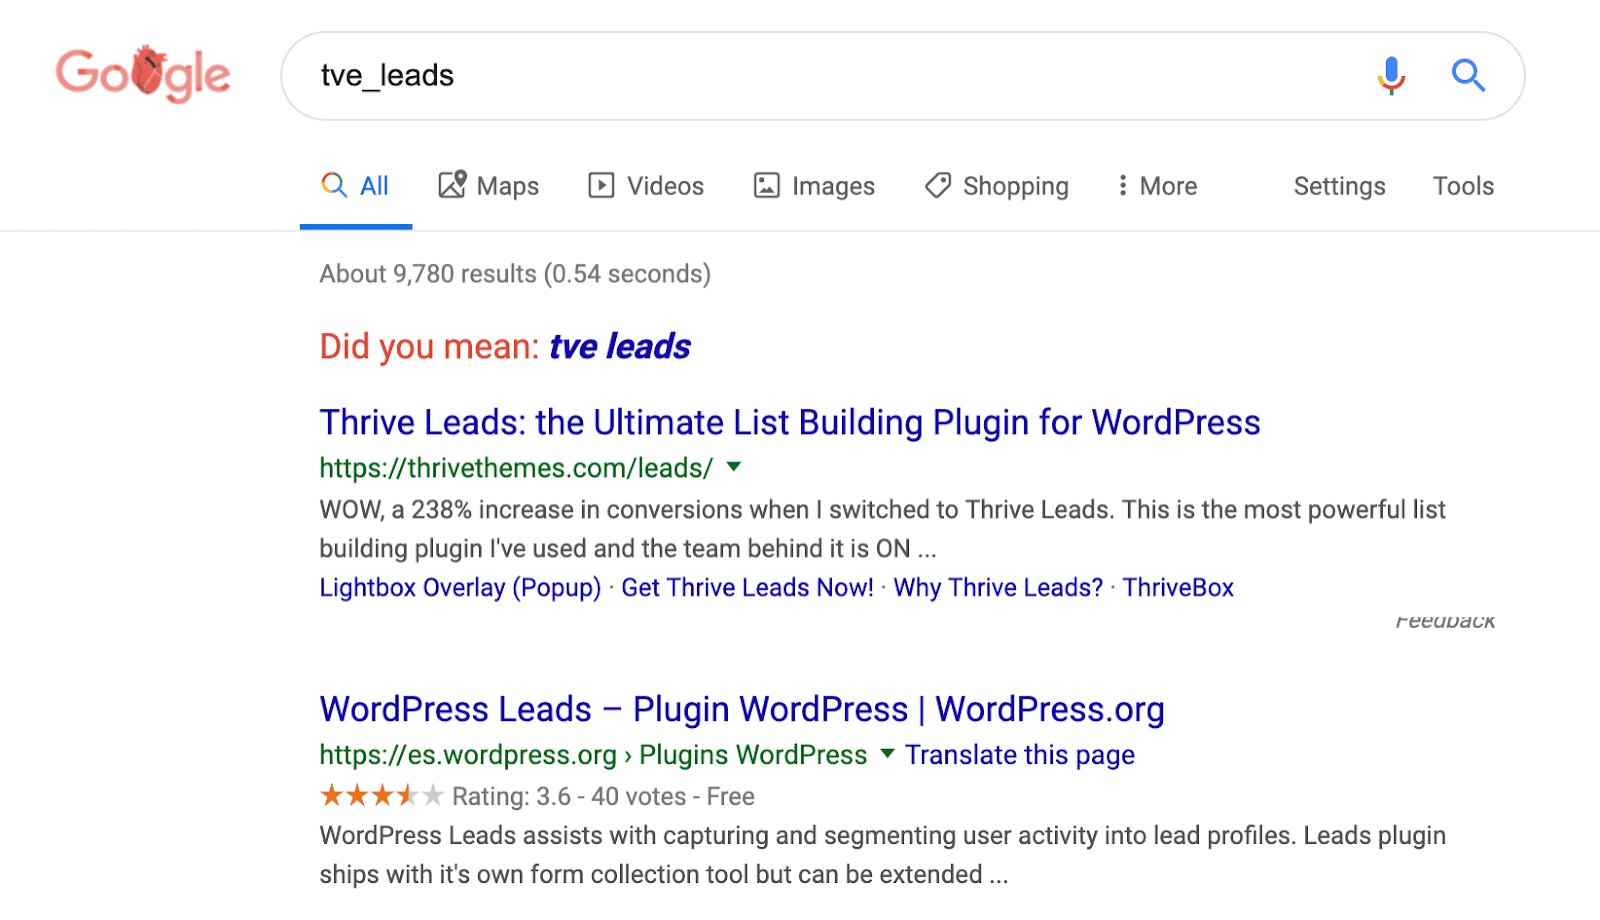 Google searches the WordPress table